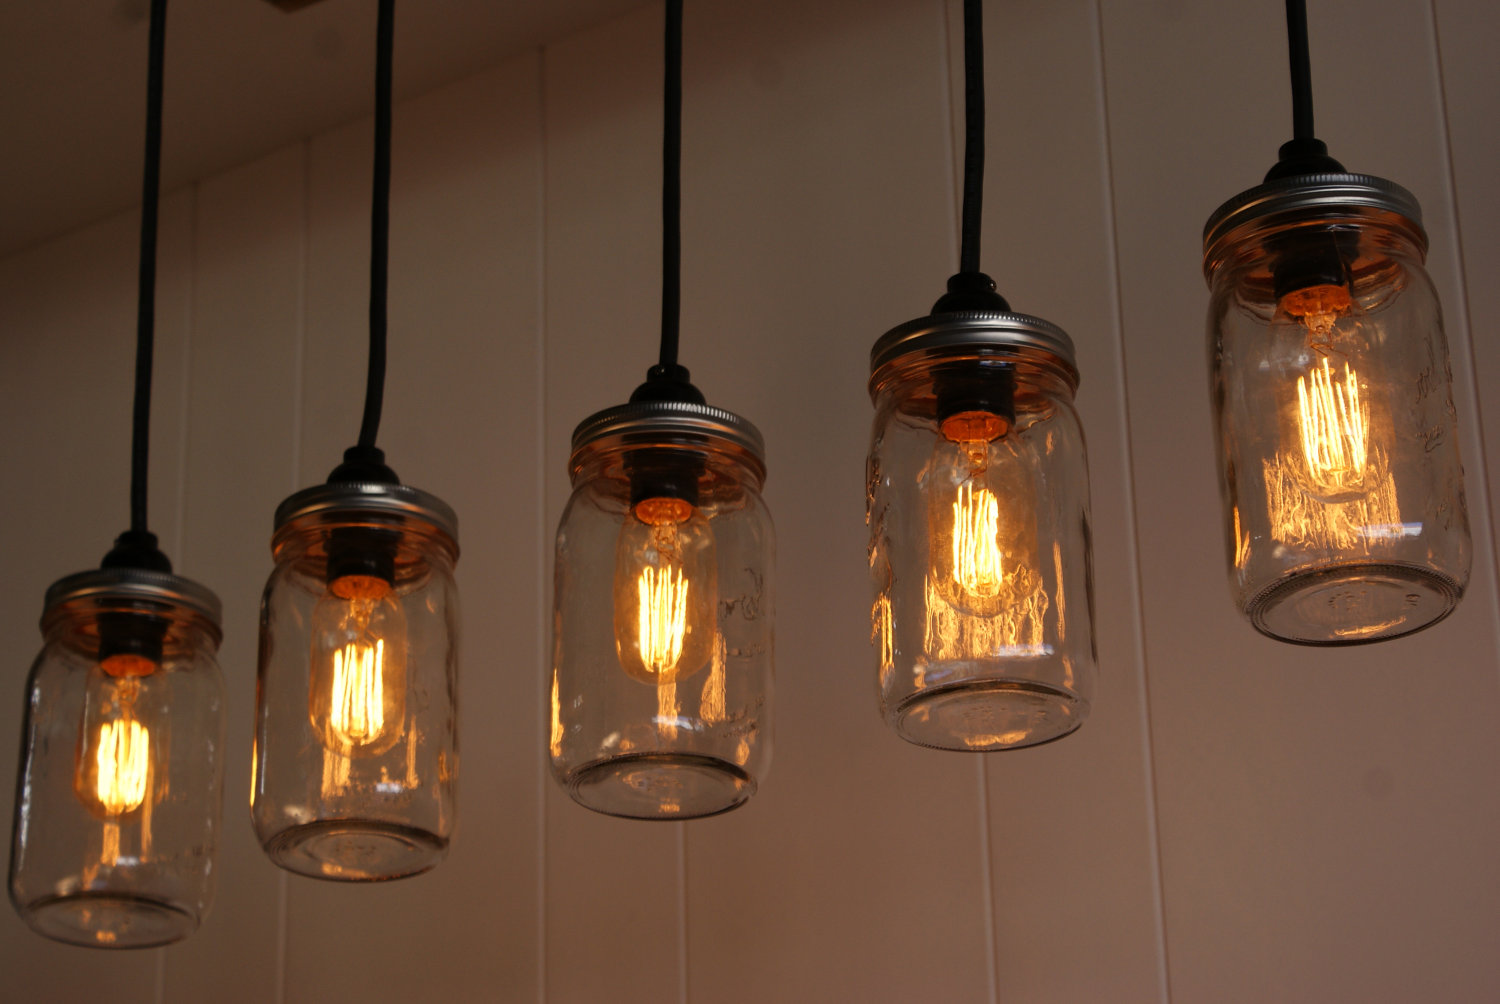 edison-lamps-photo-13